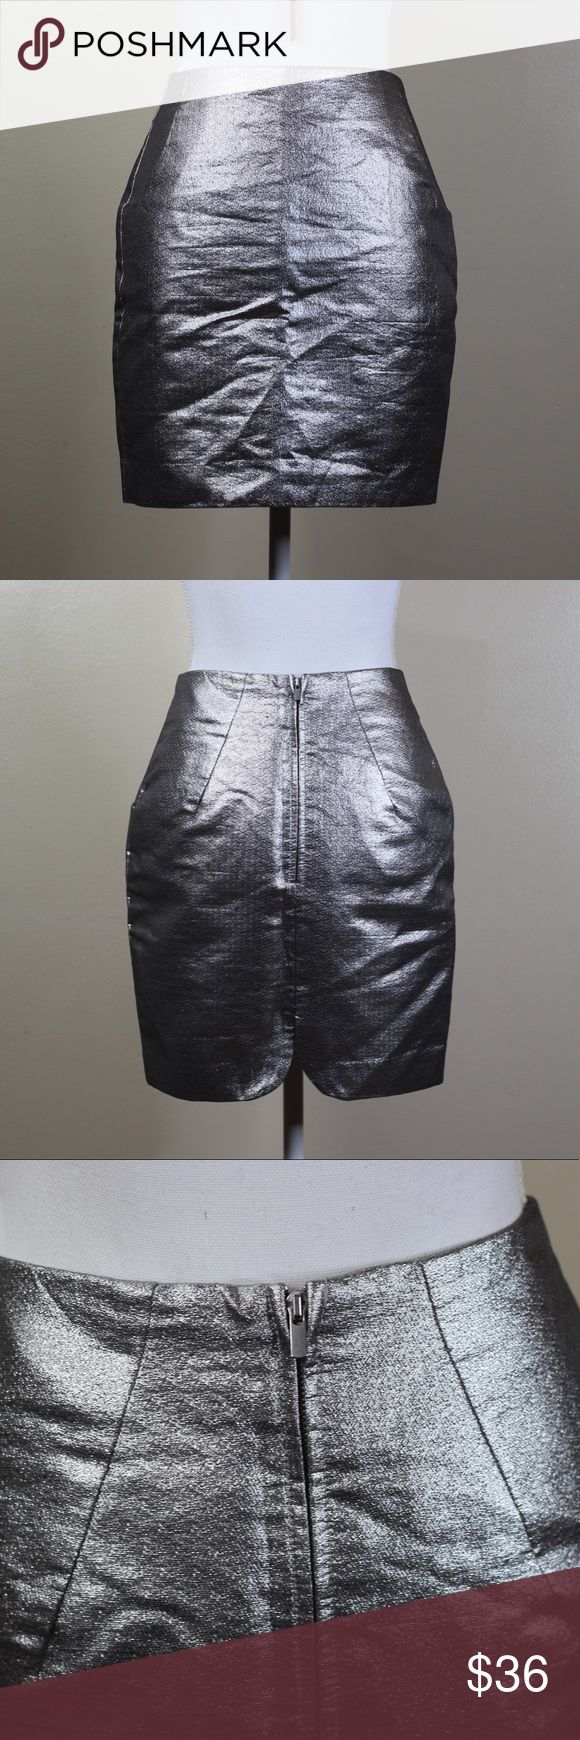 H&M Silver Mini Skirt Very cute mini skirt from H&M. Perfect condition. Ask me any questions you may have before buying. Materials listed in the pictures. H&M Skirts Mini